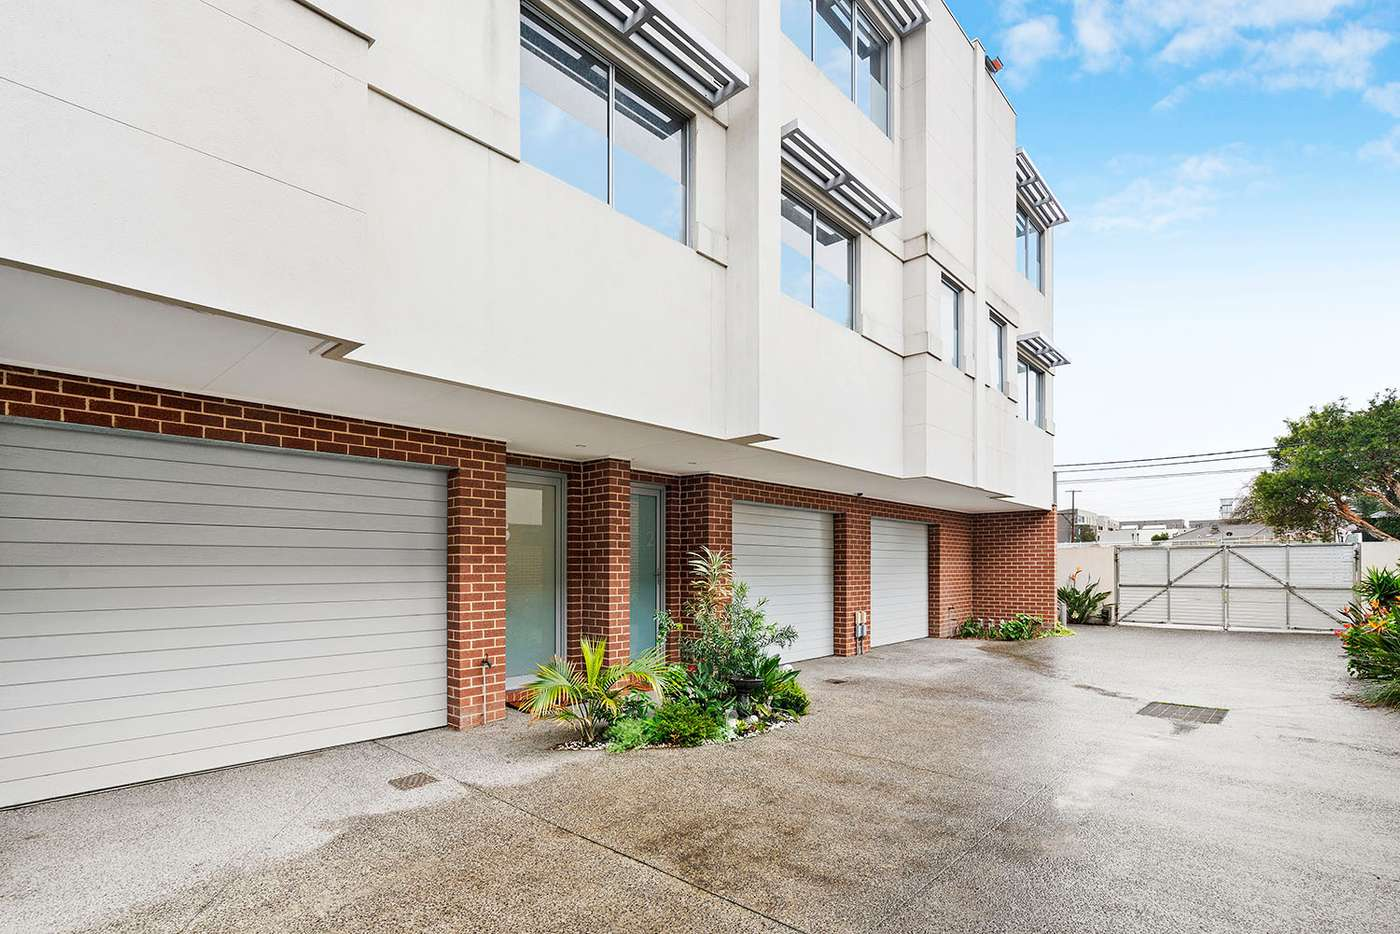 Main view of Homely townhouse listing, 3/4 Blagdon Street, Cheltenham, VIC 3192